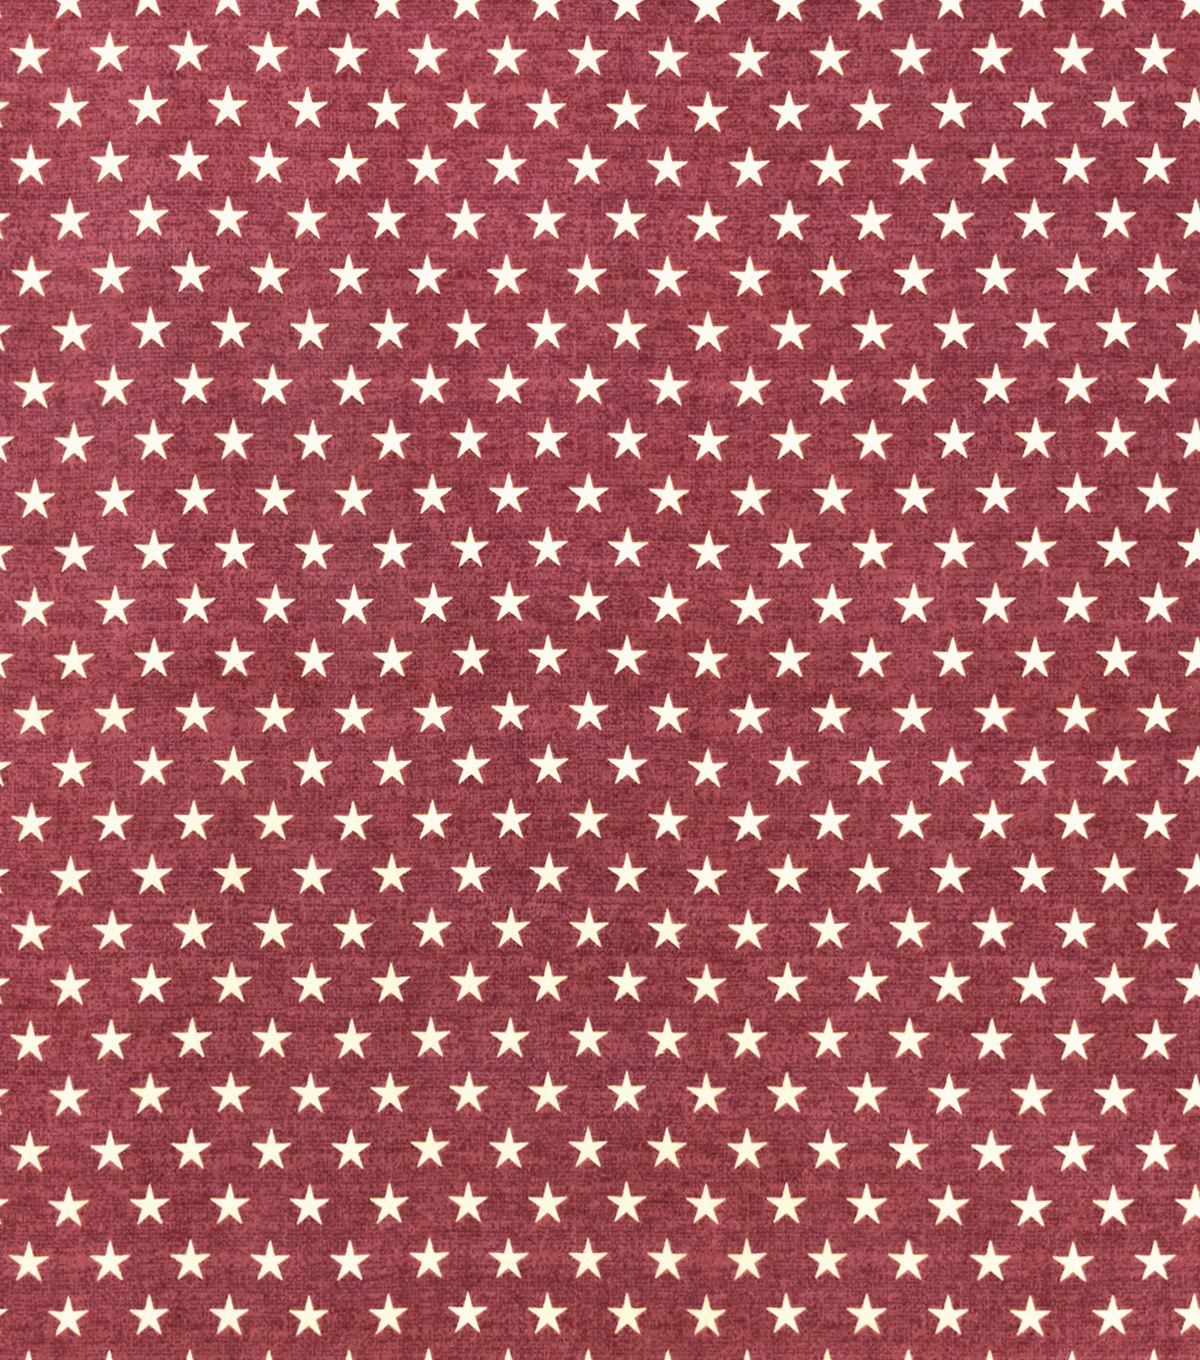 Snuggle Flannel Fabric-White Stars On Red